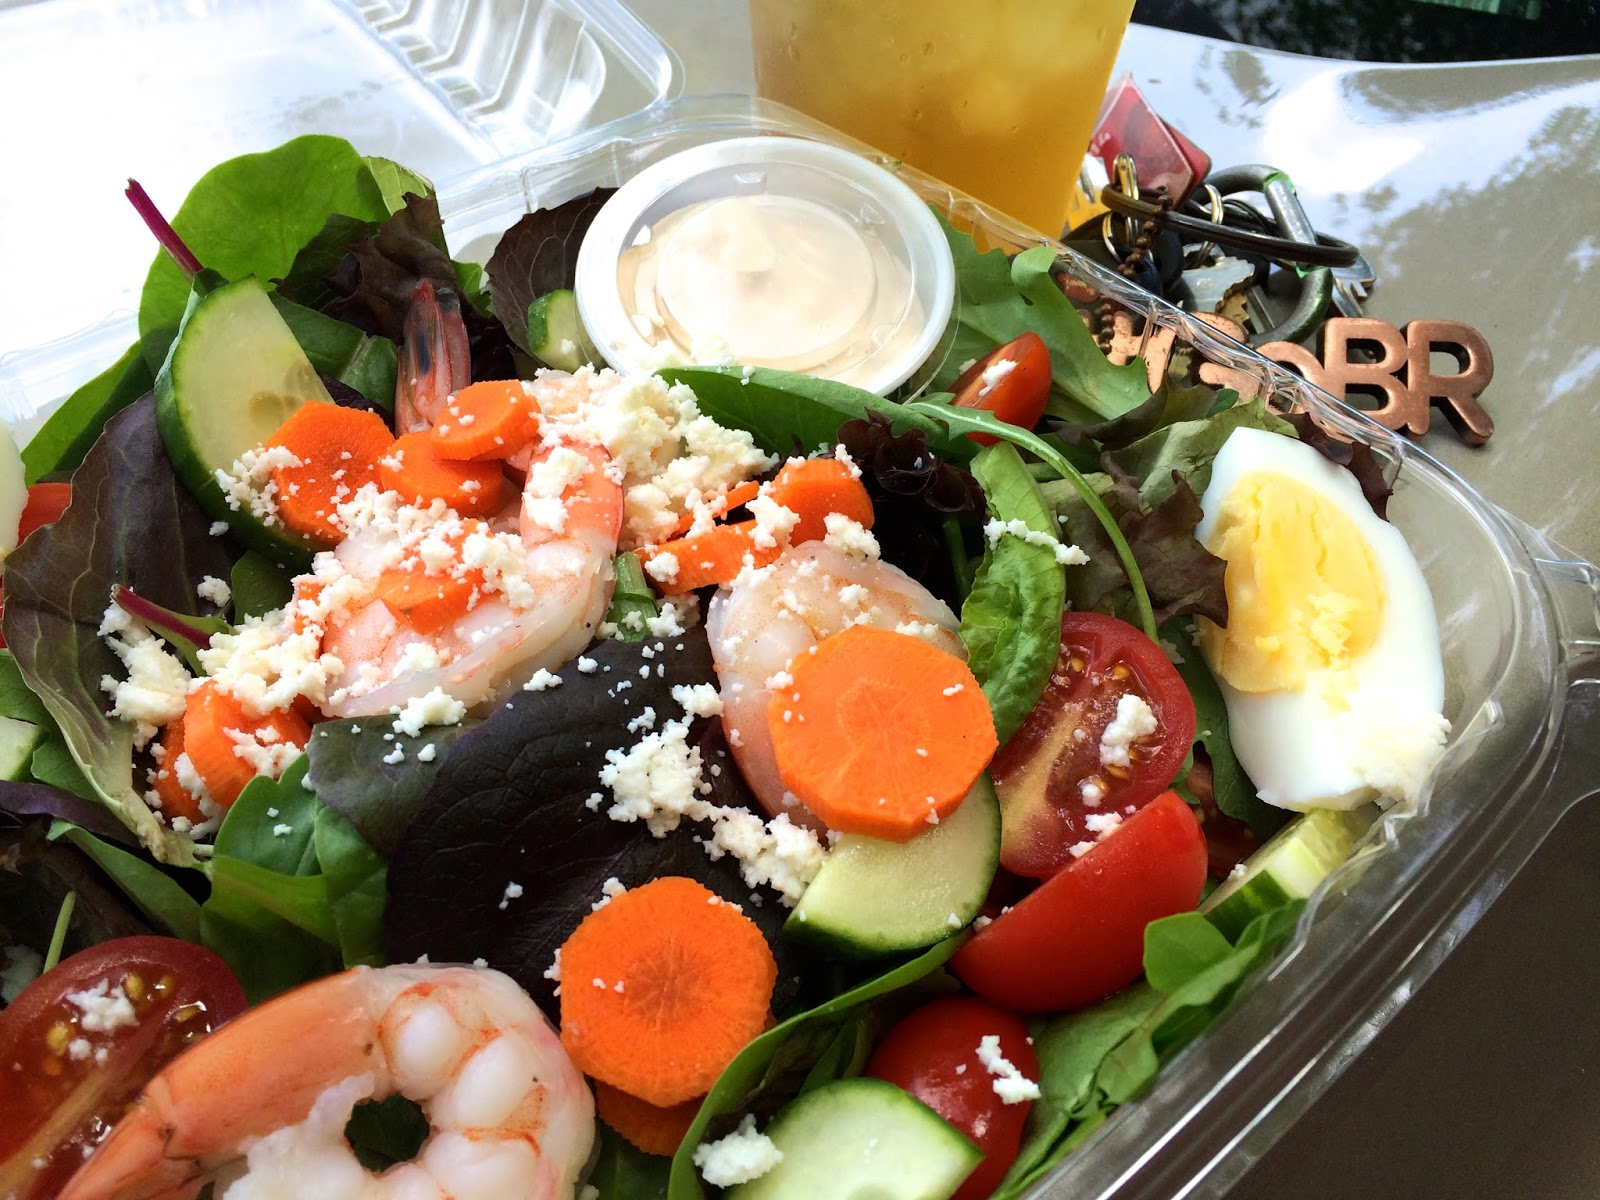 The Pronto Truck's Baja Shrimp Cob Salad